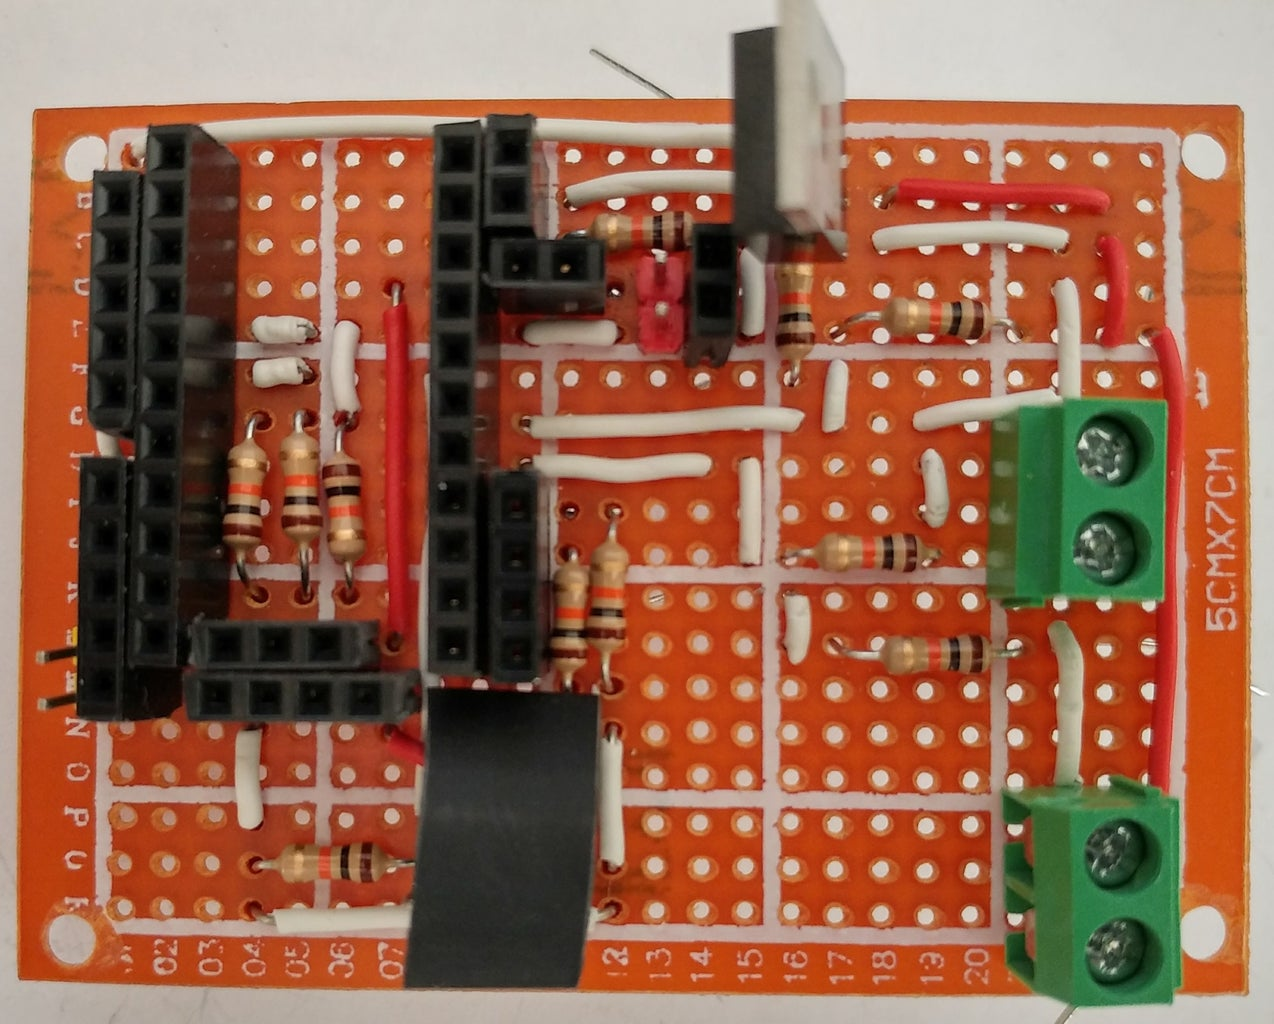 Soldering Steps: MOSFET, Resistance to Check Voltage